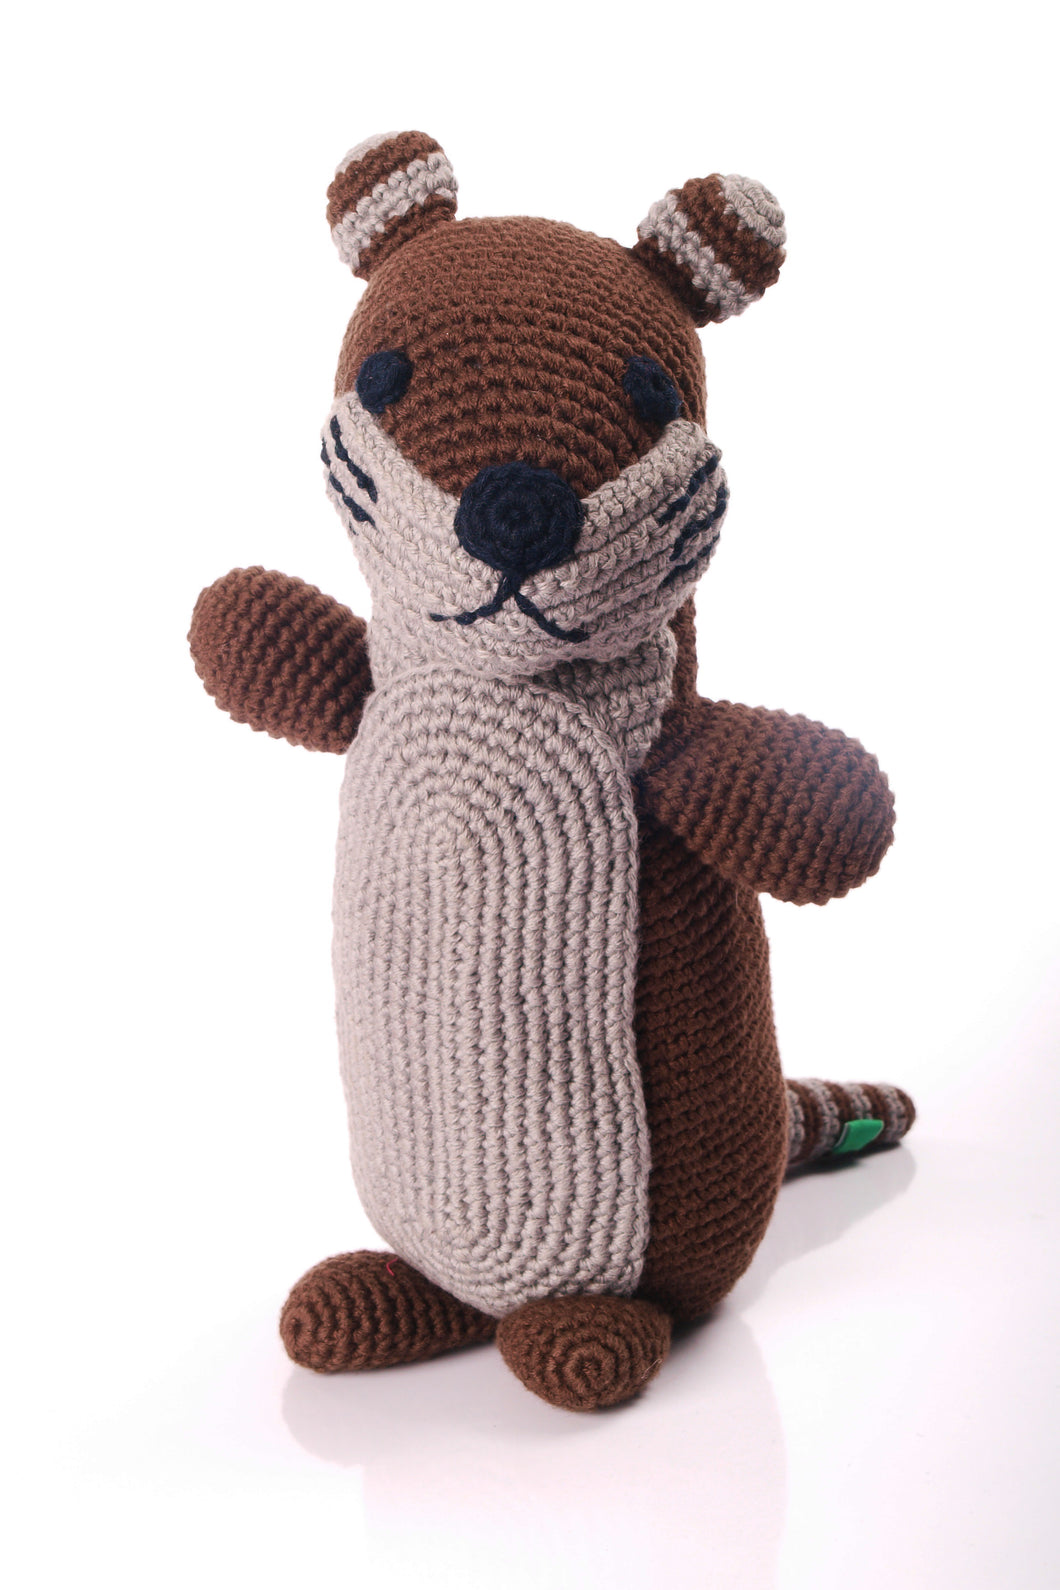 Pebble Animals – Otter